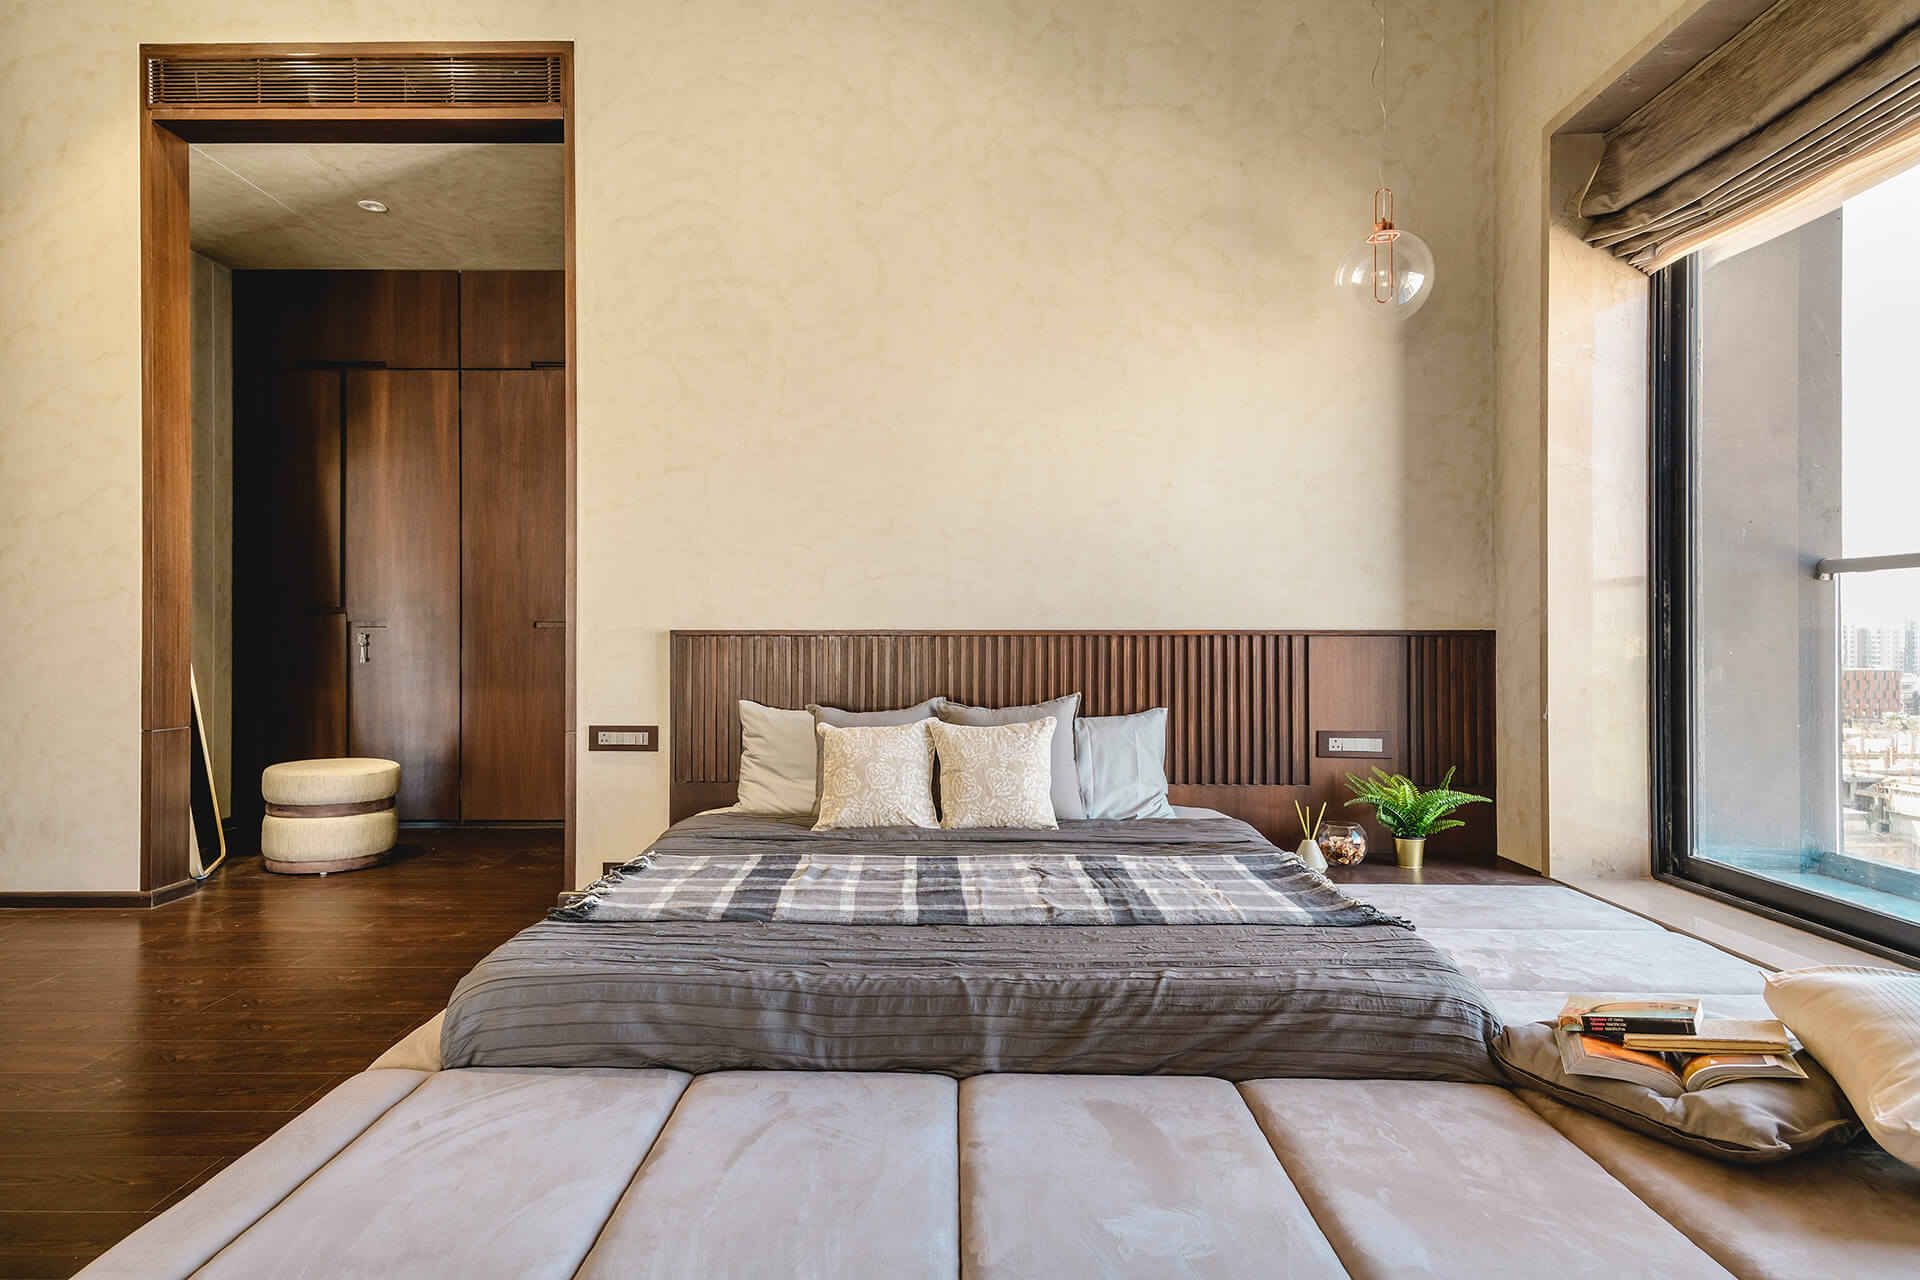 Guest bedroom with dressing area at the back | Neogenesis + Studi0261 | India | STIRworld